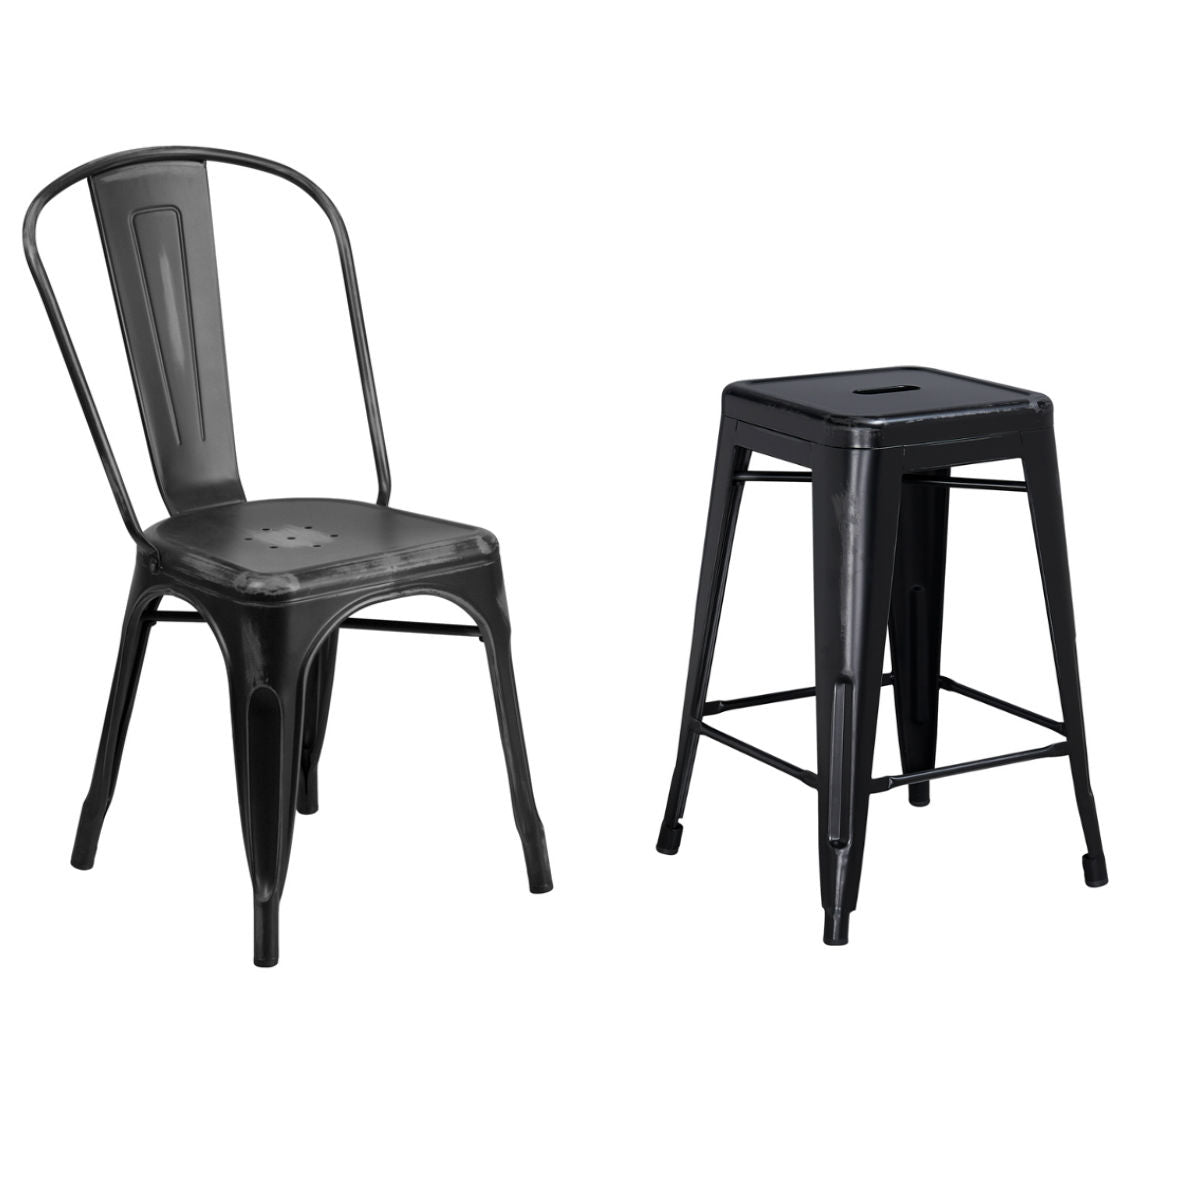 Flash Furniture Distressed Black Metal Indoor-Outdoor Stackable Chair with Backless Distressed Black Metal Indoor Counter Height Stool